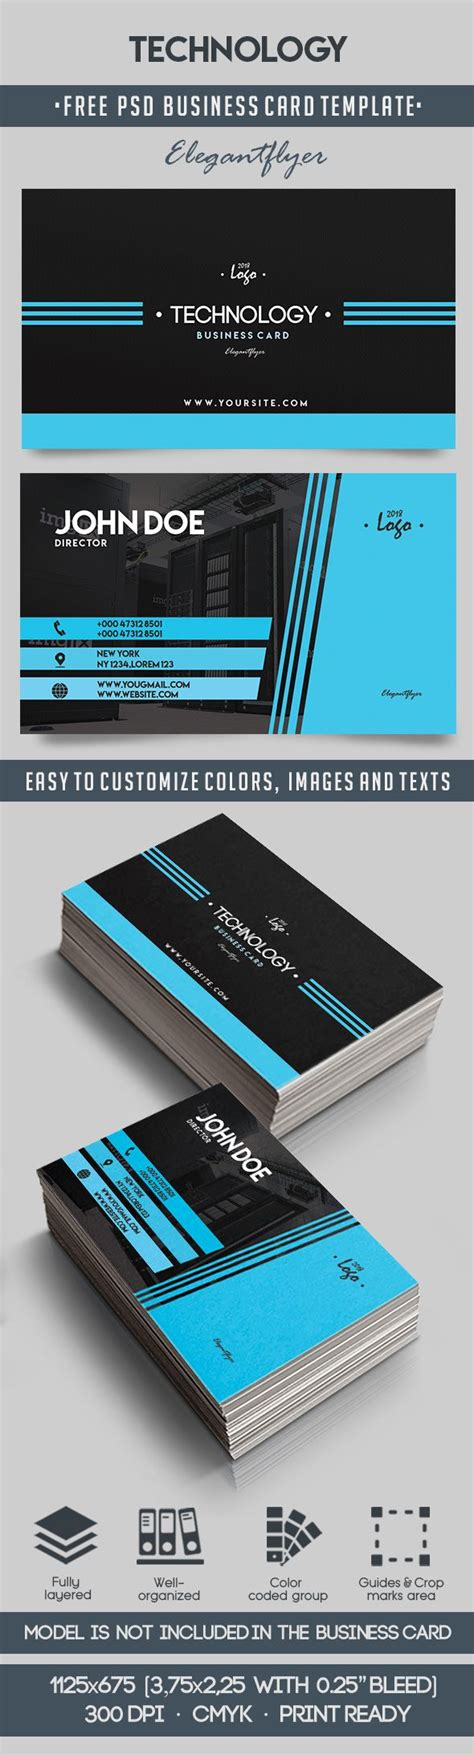 photoshop business card templates technology technology free business card templates psd by